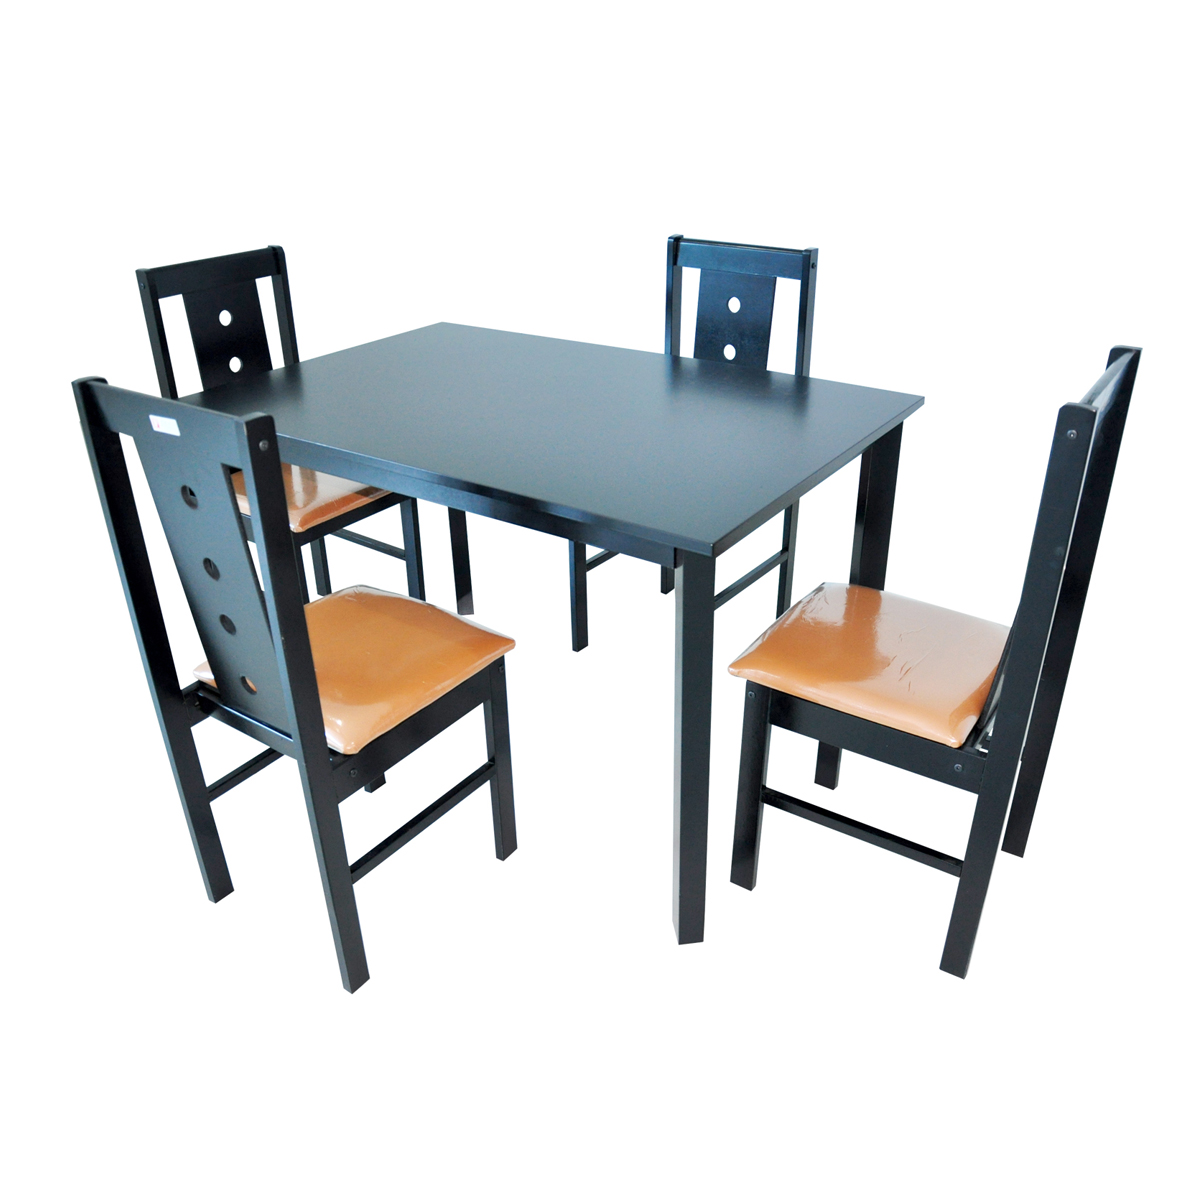 Model Kursi Meja Makan Felini Furniture Set Meja Makan 4 Kursi Mmk 4